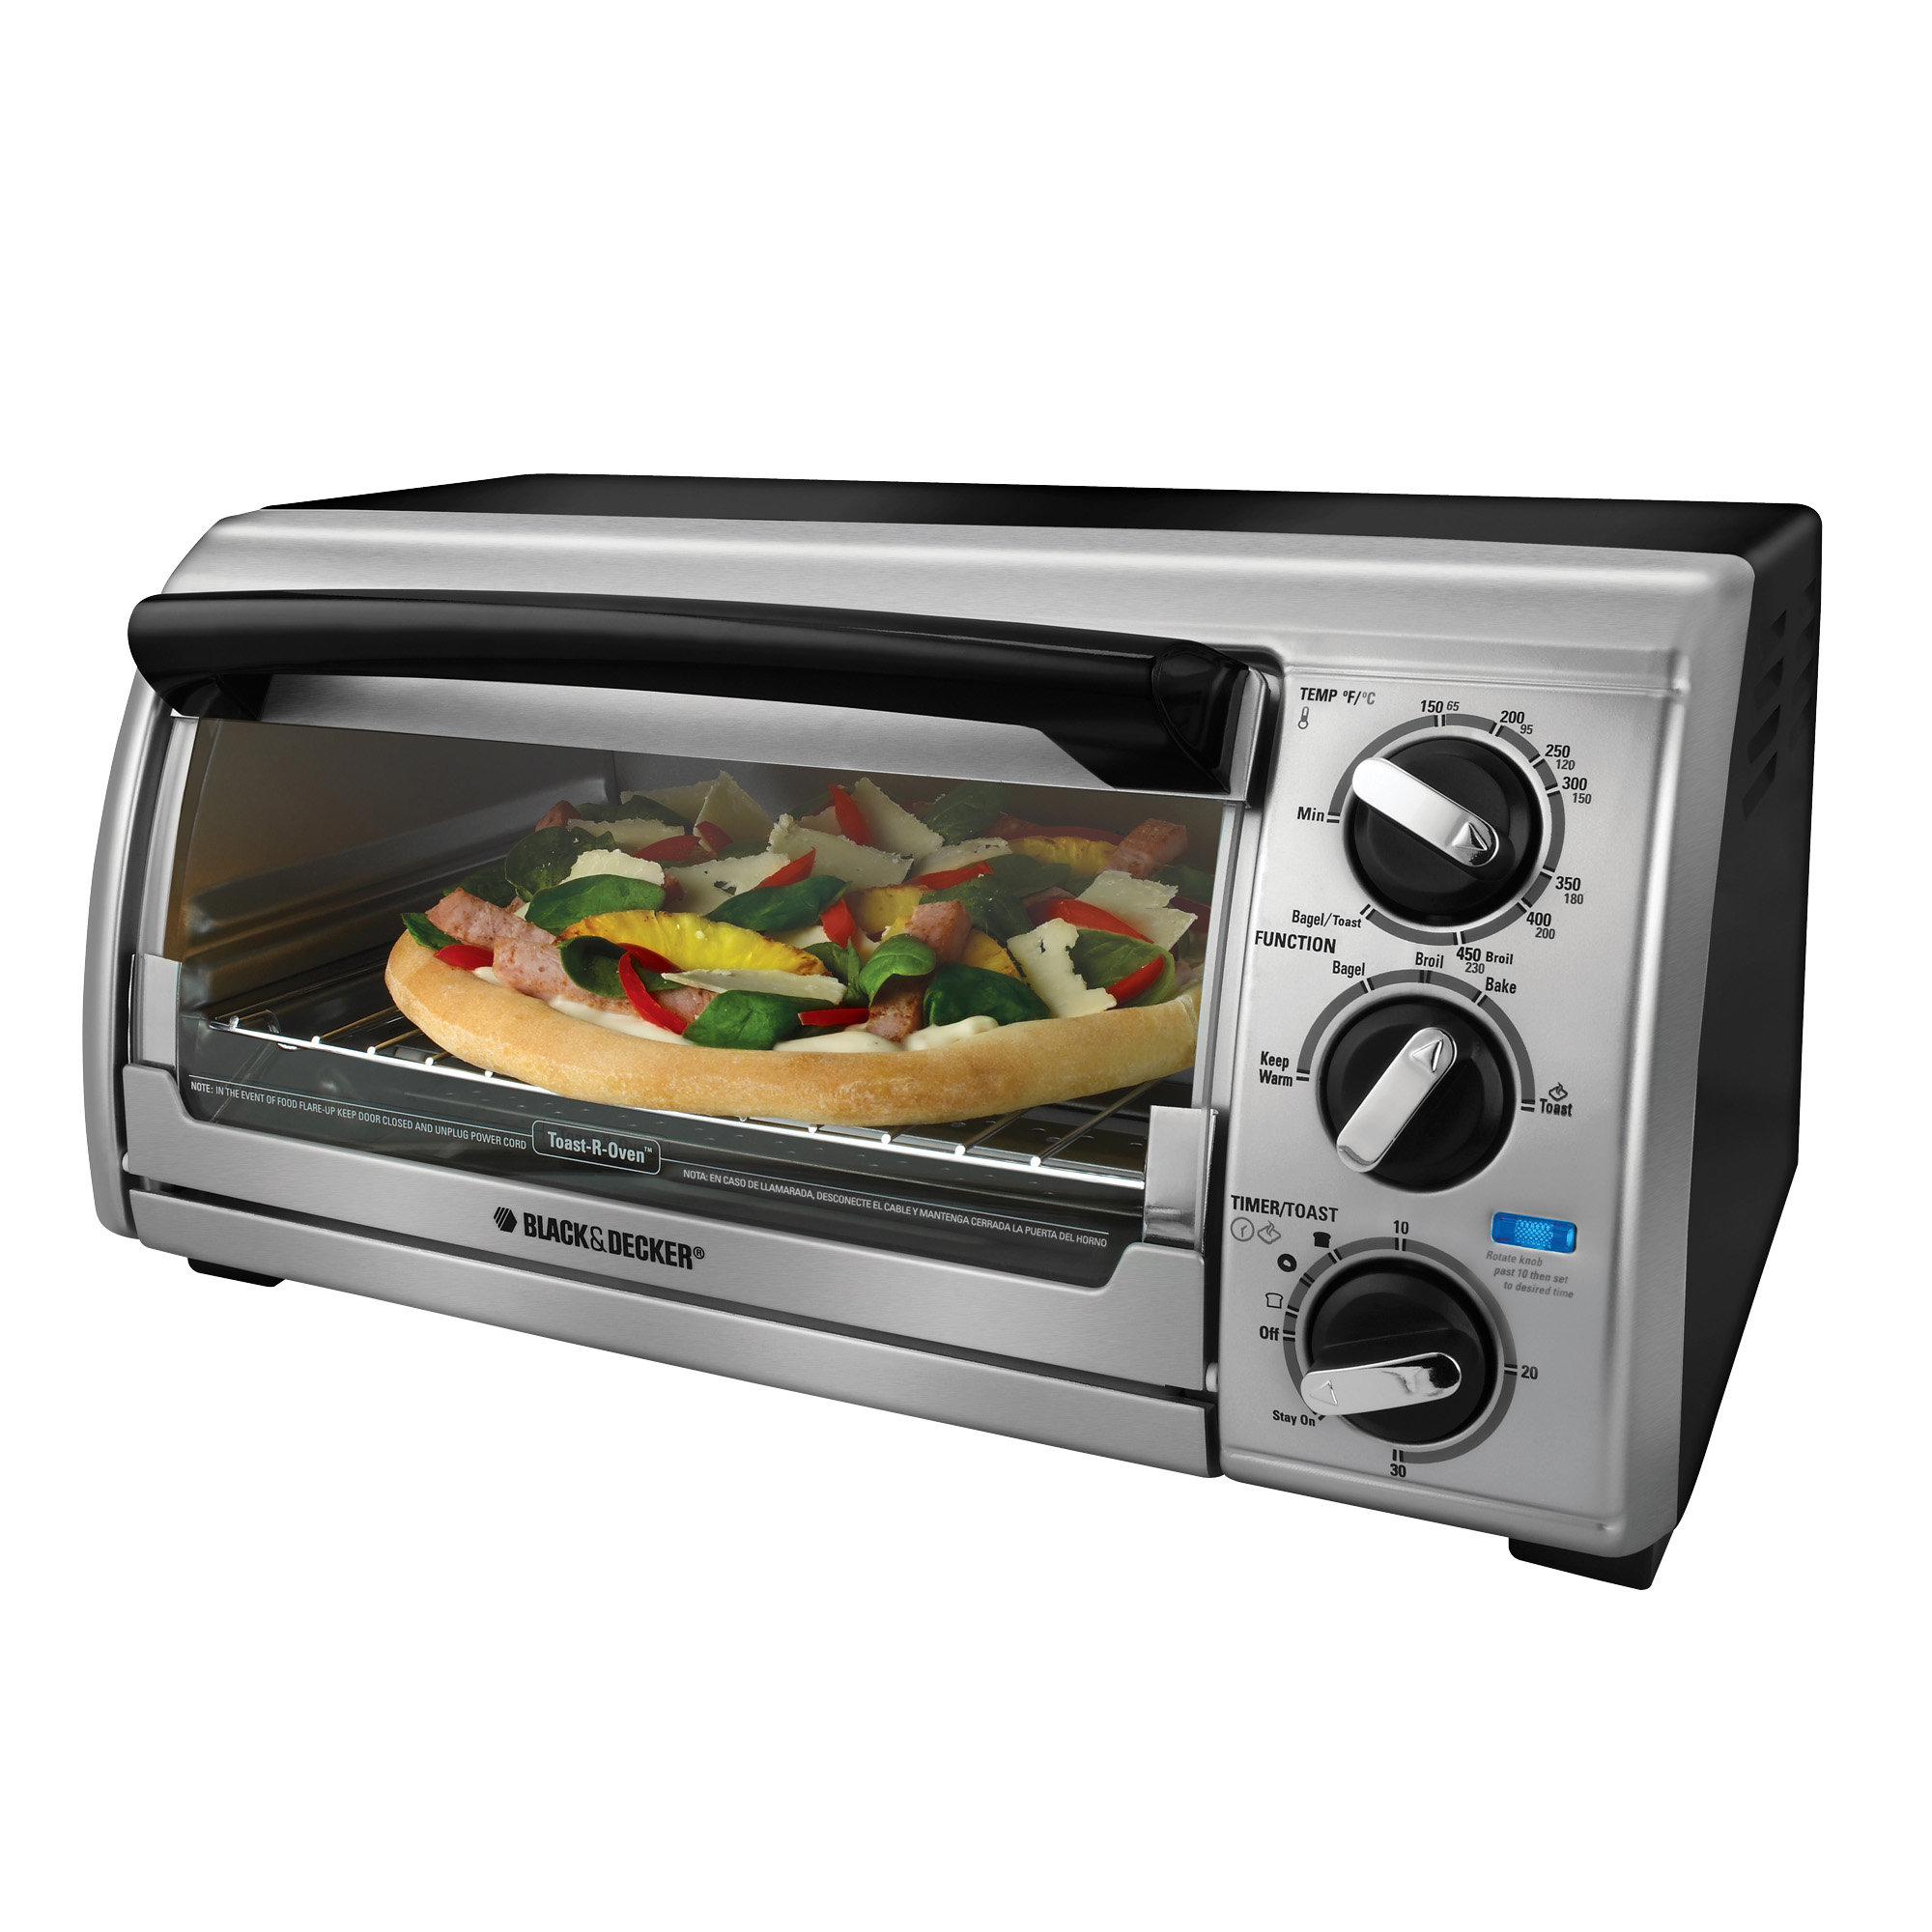 ... Black and Decker Toaster Oven Counter Top Toaster Oven TRO480BS